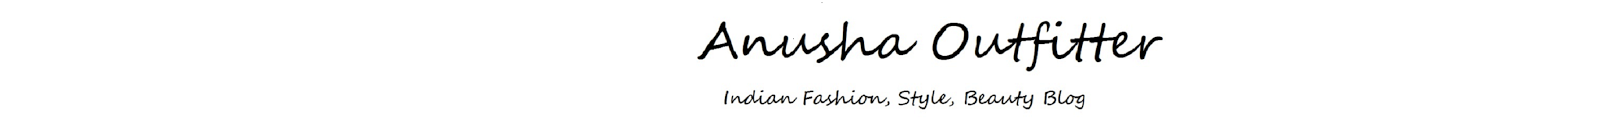 Anusha Outfitter